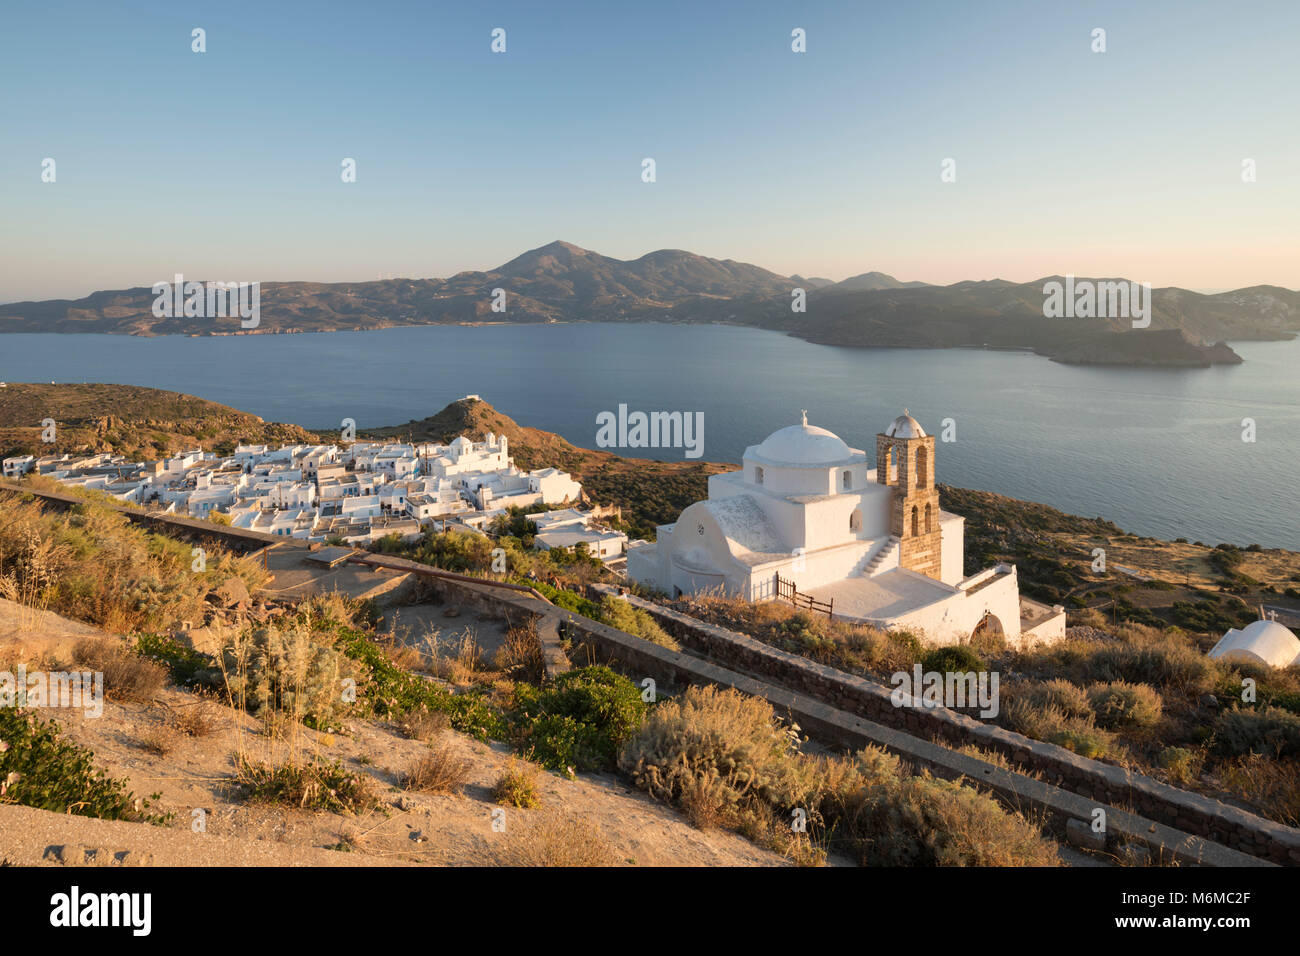 White old town of Plaka with Greek Orthodox church and Milos Bay from Plaka Castle, Plaka, Milos, Cyclades, Aegean - Stock Image